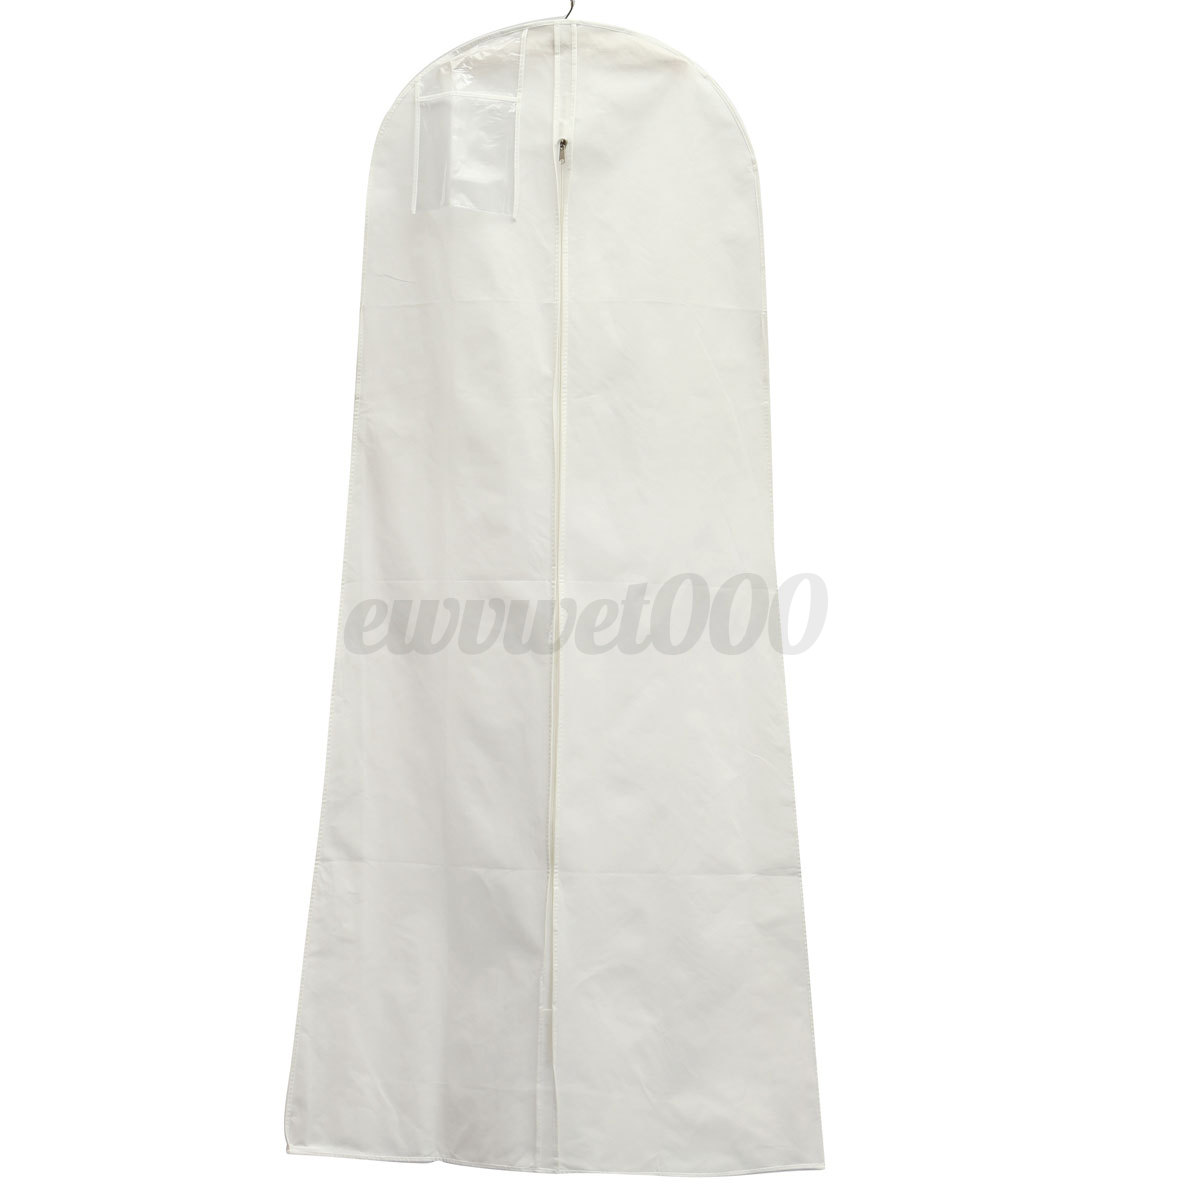 Wedding Dress Cover Storage Bags Dustproof Breathable Large Bridal Gown Garment